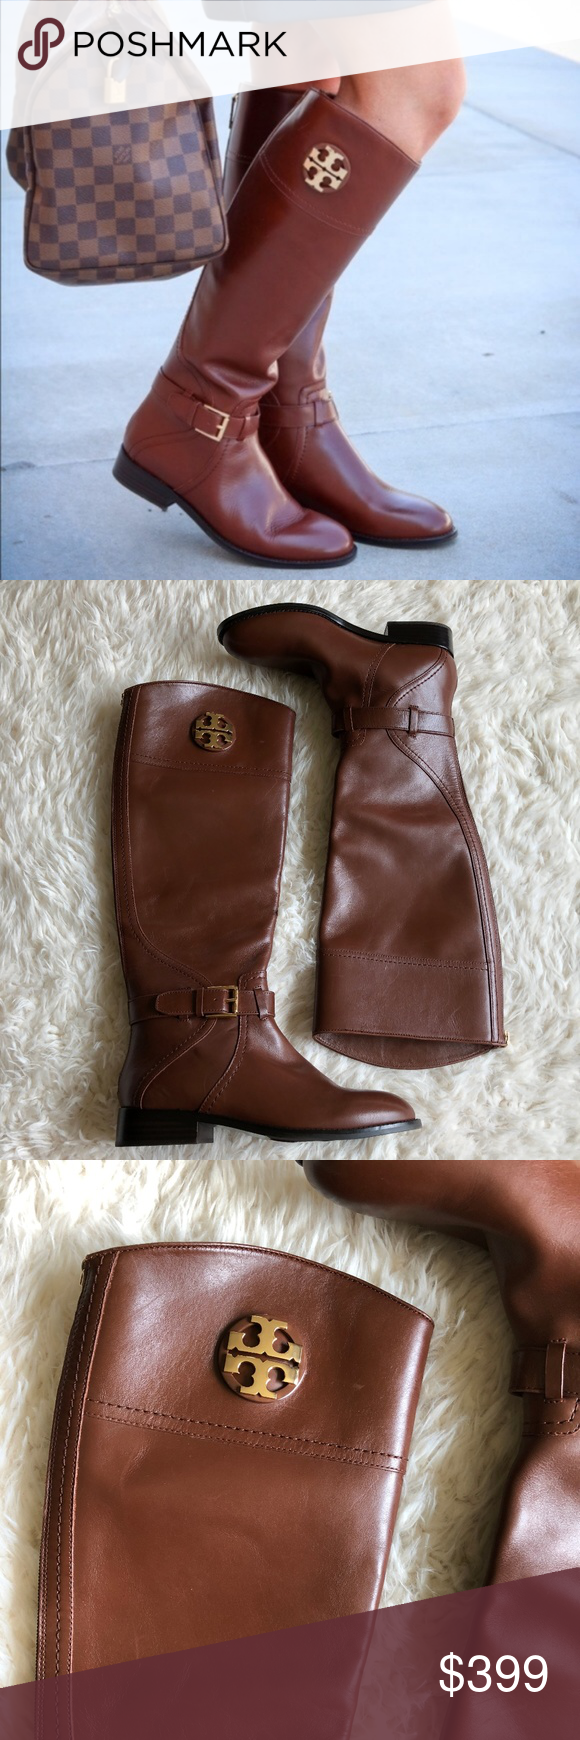 b7488dd4ed5c Tory Burch Adeline Almond Riding Tall Boot New without box Details A  gleaming logo medallion adds